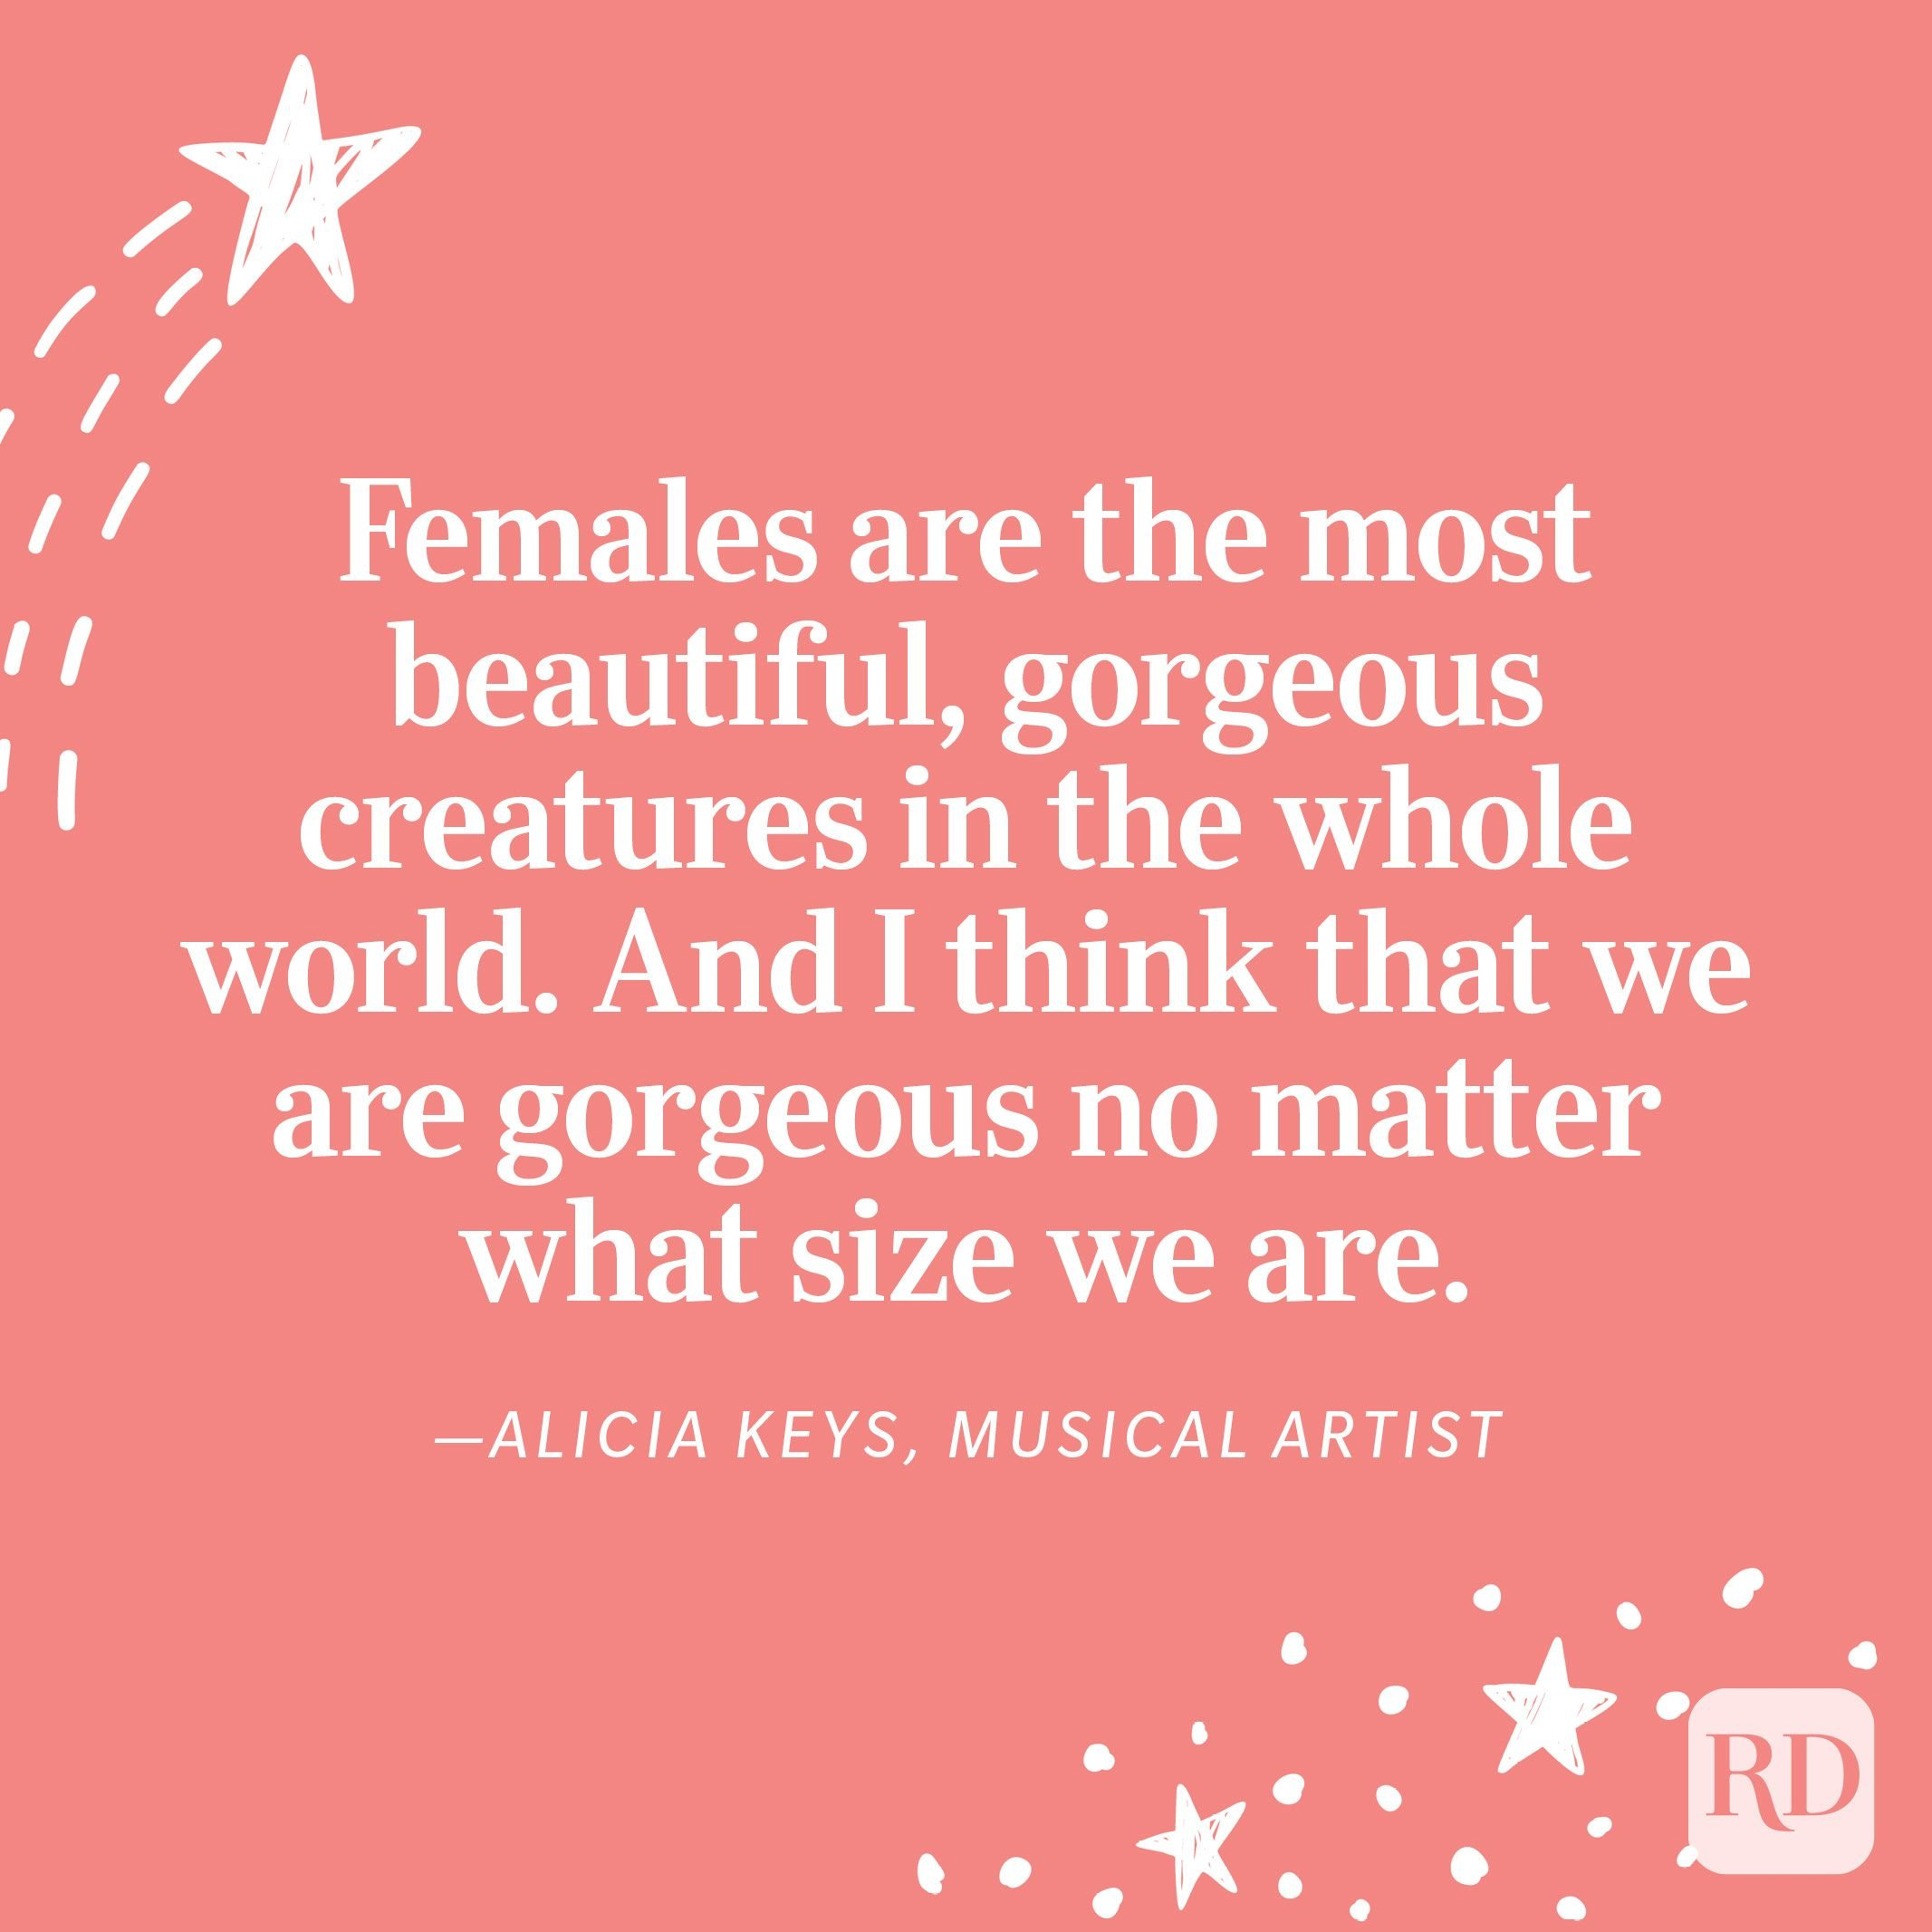 """""""Females are the most beautiful, gorgeous creatures in the whole world. And I think that we are gorgeous no matter what size we are."""" —Alicia Keys, musical artist"""